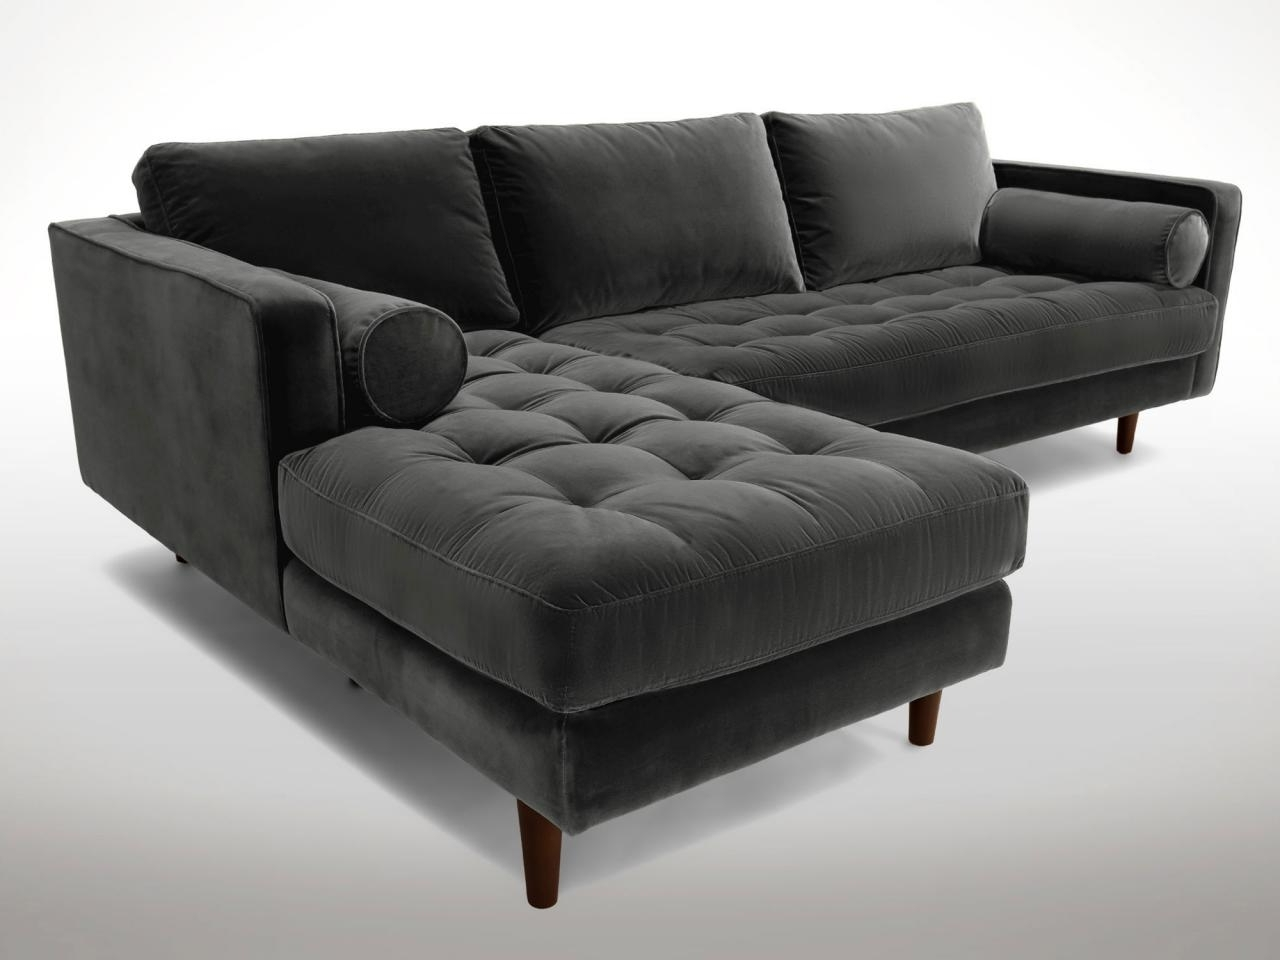 Newest Velvet Sofas Throughout 11 Of The Best Velvet Sofas To Decorate With (View 20 of 20)